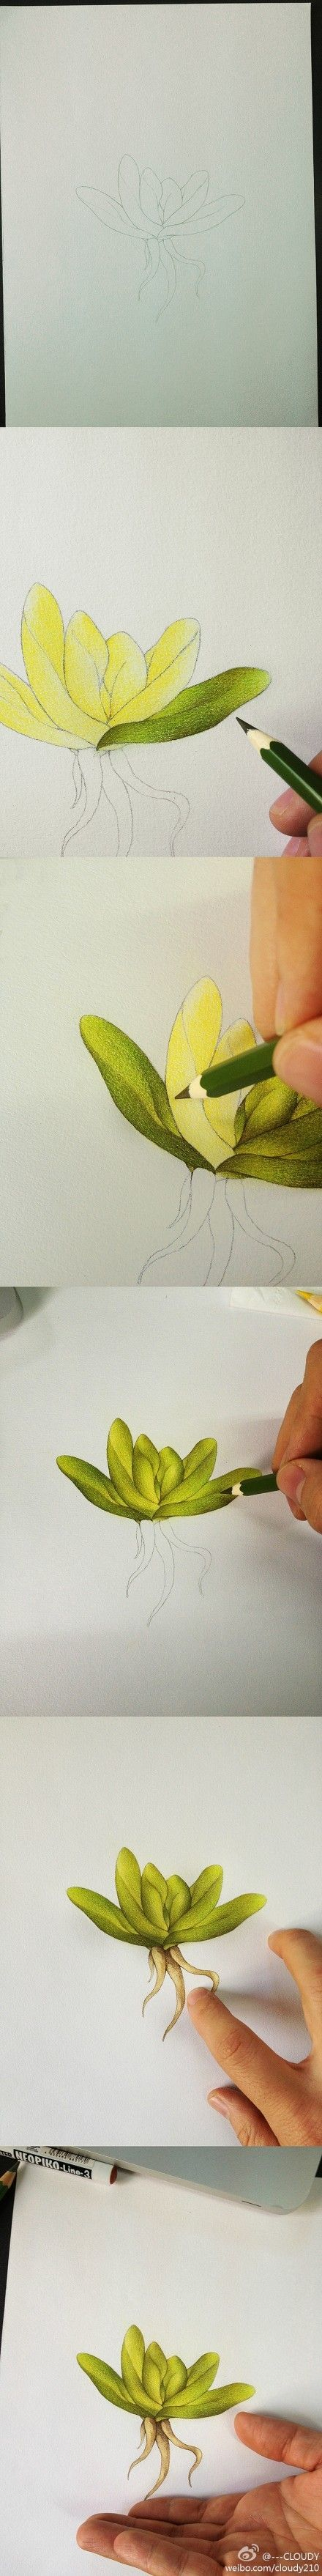 Step by step colored pencil drawing.